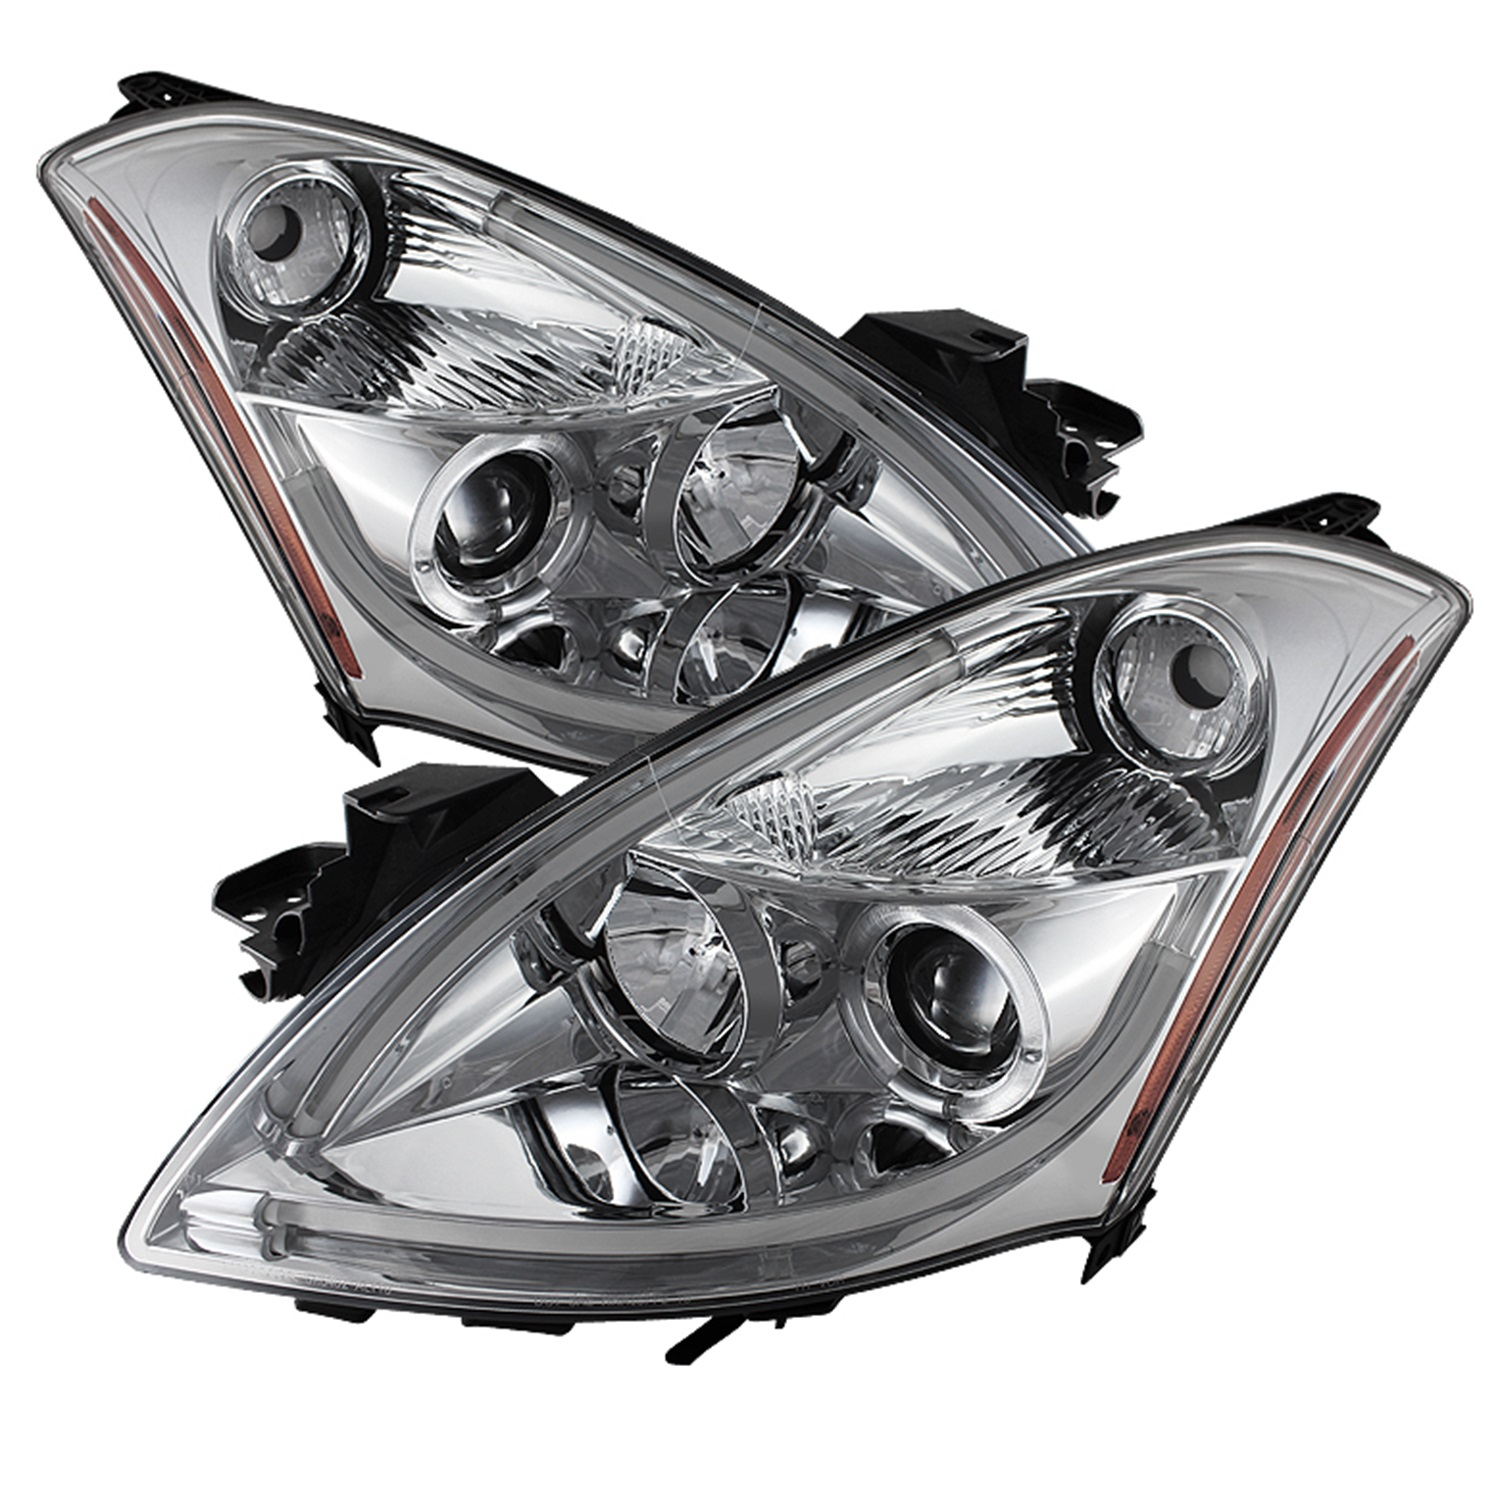 Spyder Auto 5076847 Halo DRL LED Projector Headlight Fits 10-12 Altima